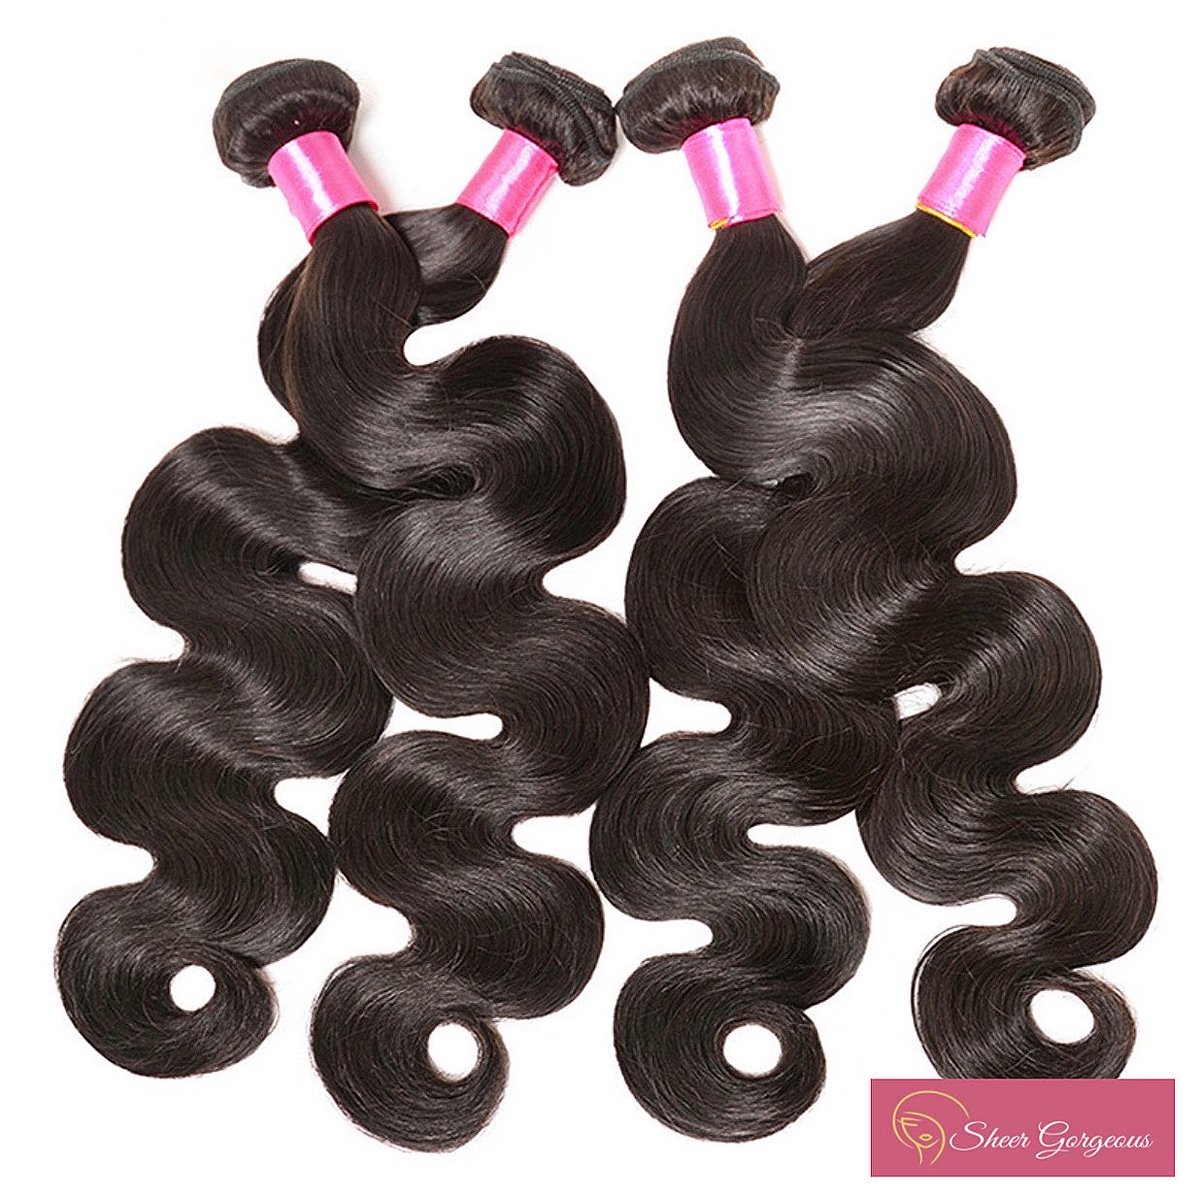 Looking for quality hair bundles (weave on)? Visit https://t.co/H6PO9uUsNx for all your air needs. We provide closures, frontals, hair bundles, wigs & eyelashes  #hair #humanhair #hairextension #hairpieces #hairbundle #hairbundles #beauty #beautystore #hairstore #qualityhair https://t.co/umWPkGIN1B